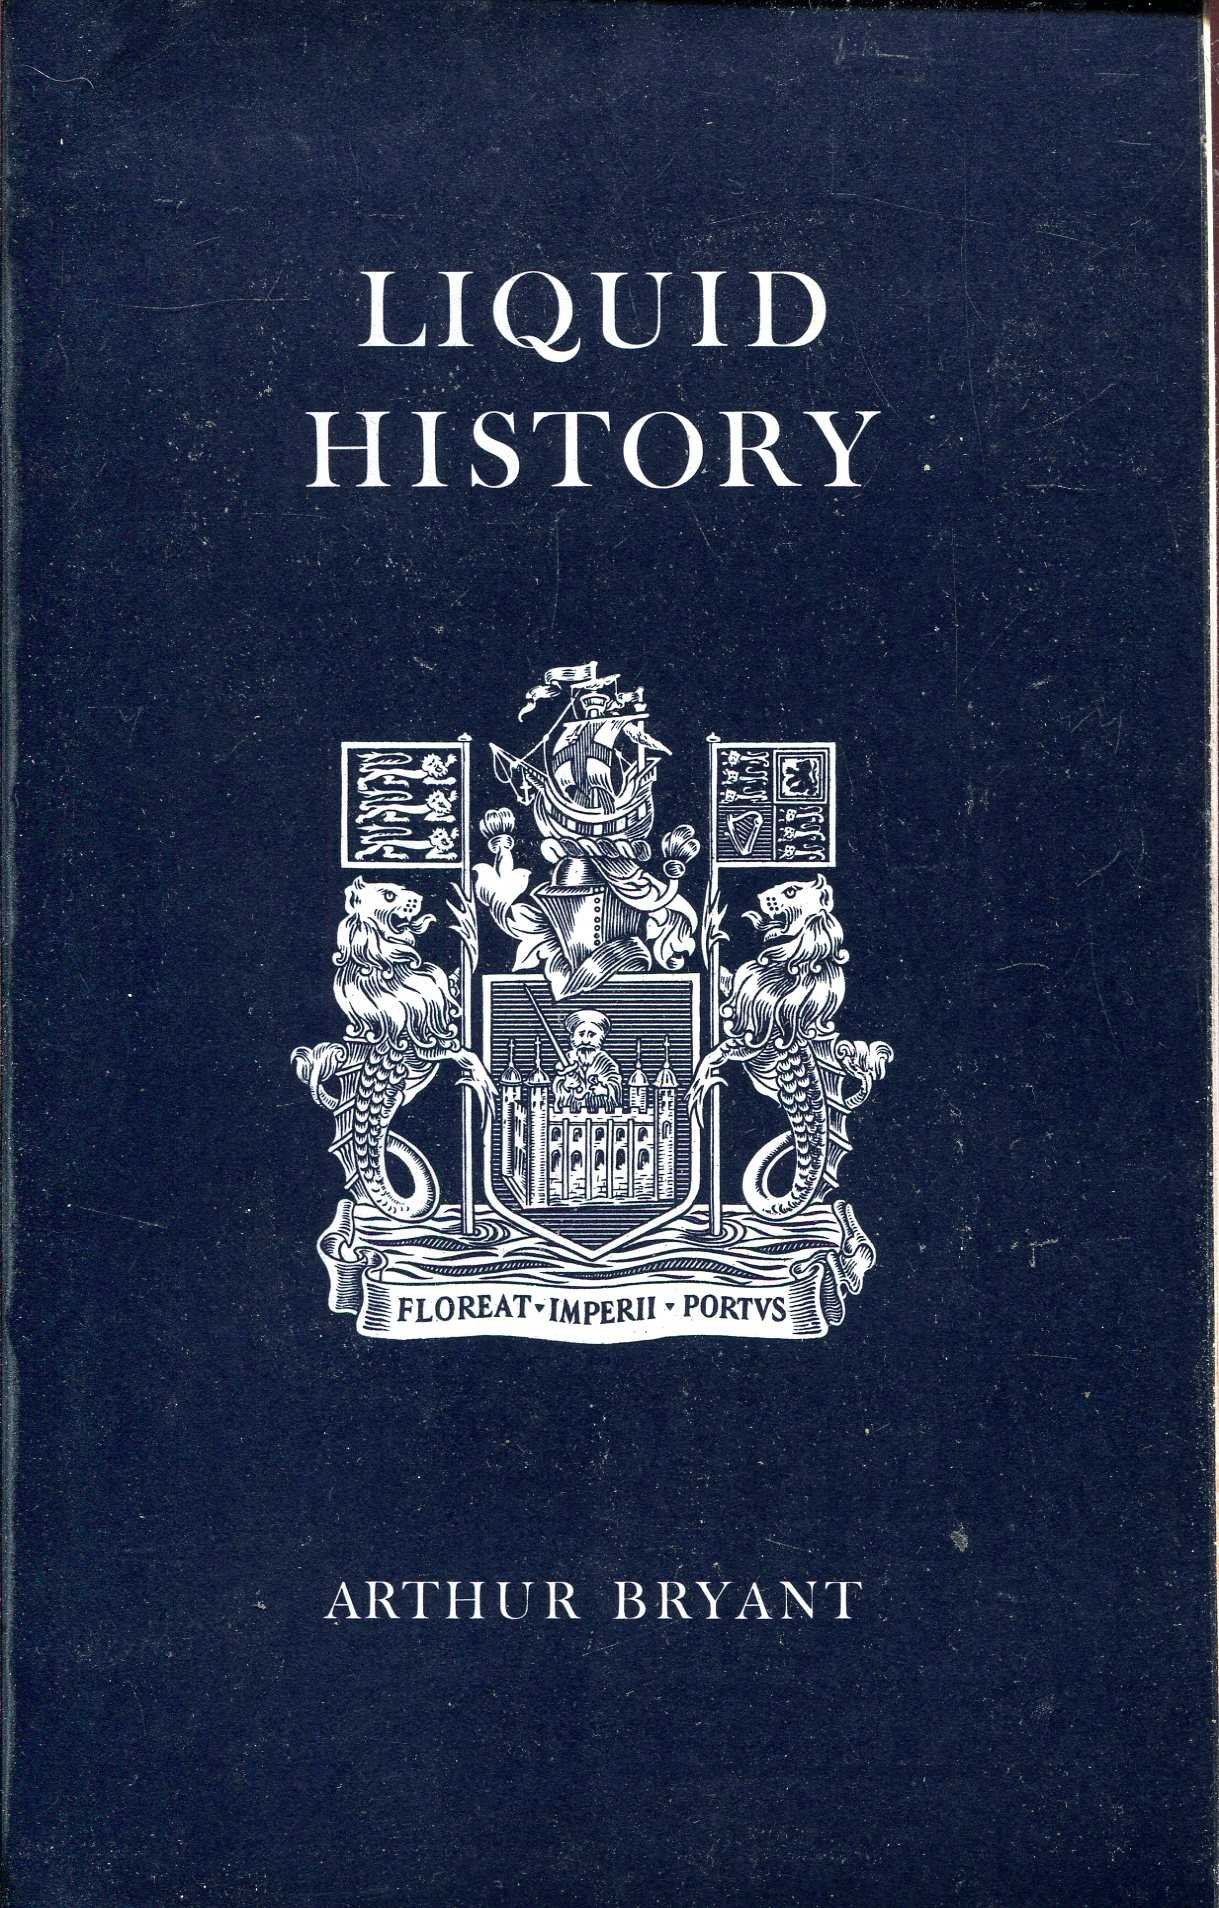 Image for Liquid History : commemorate fifty years of the Port of London Authority 1909-1959